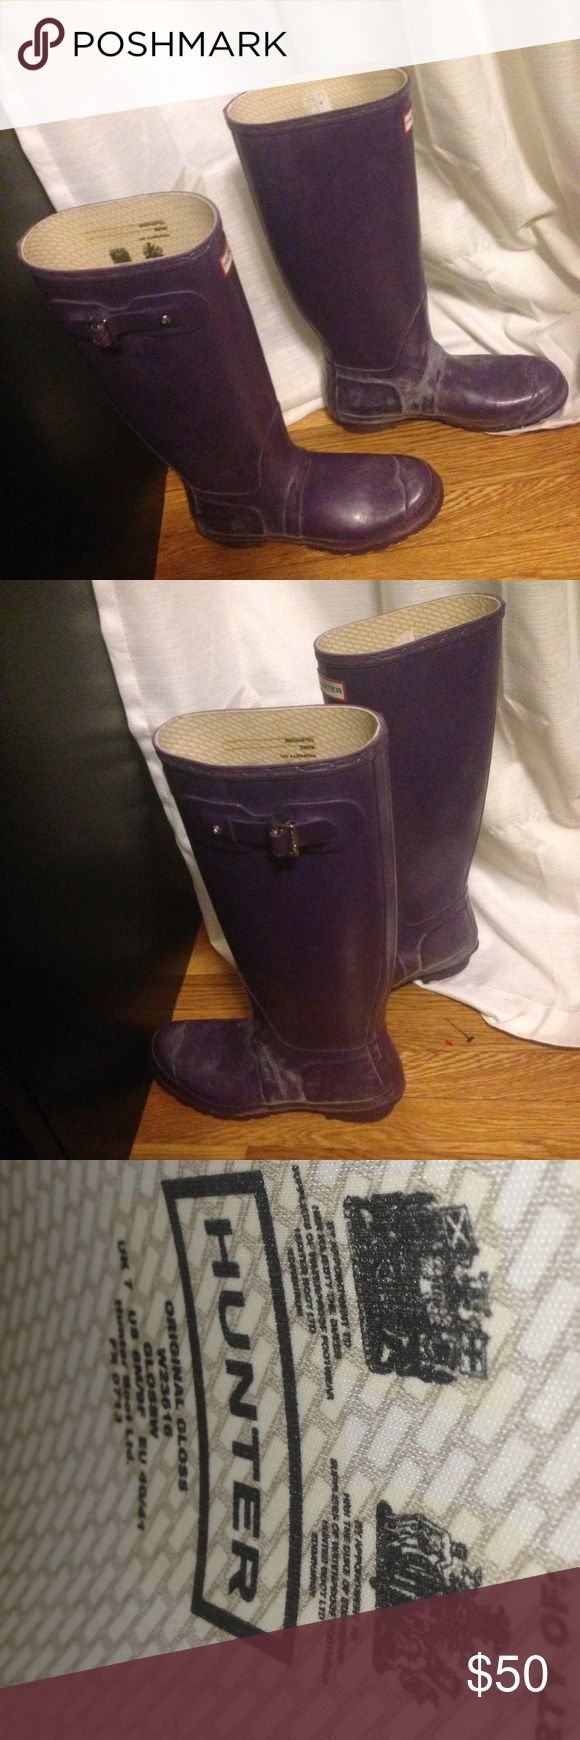 Hunter 9 purple Wellies rain boots EUC Nice boots. Gently worn in good  condition. Buckles intact. Hunter Boots Shoes Winter & Rain Boots